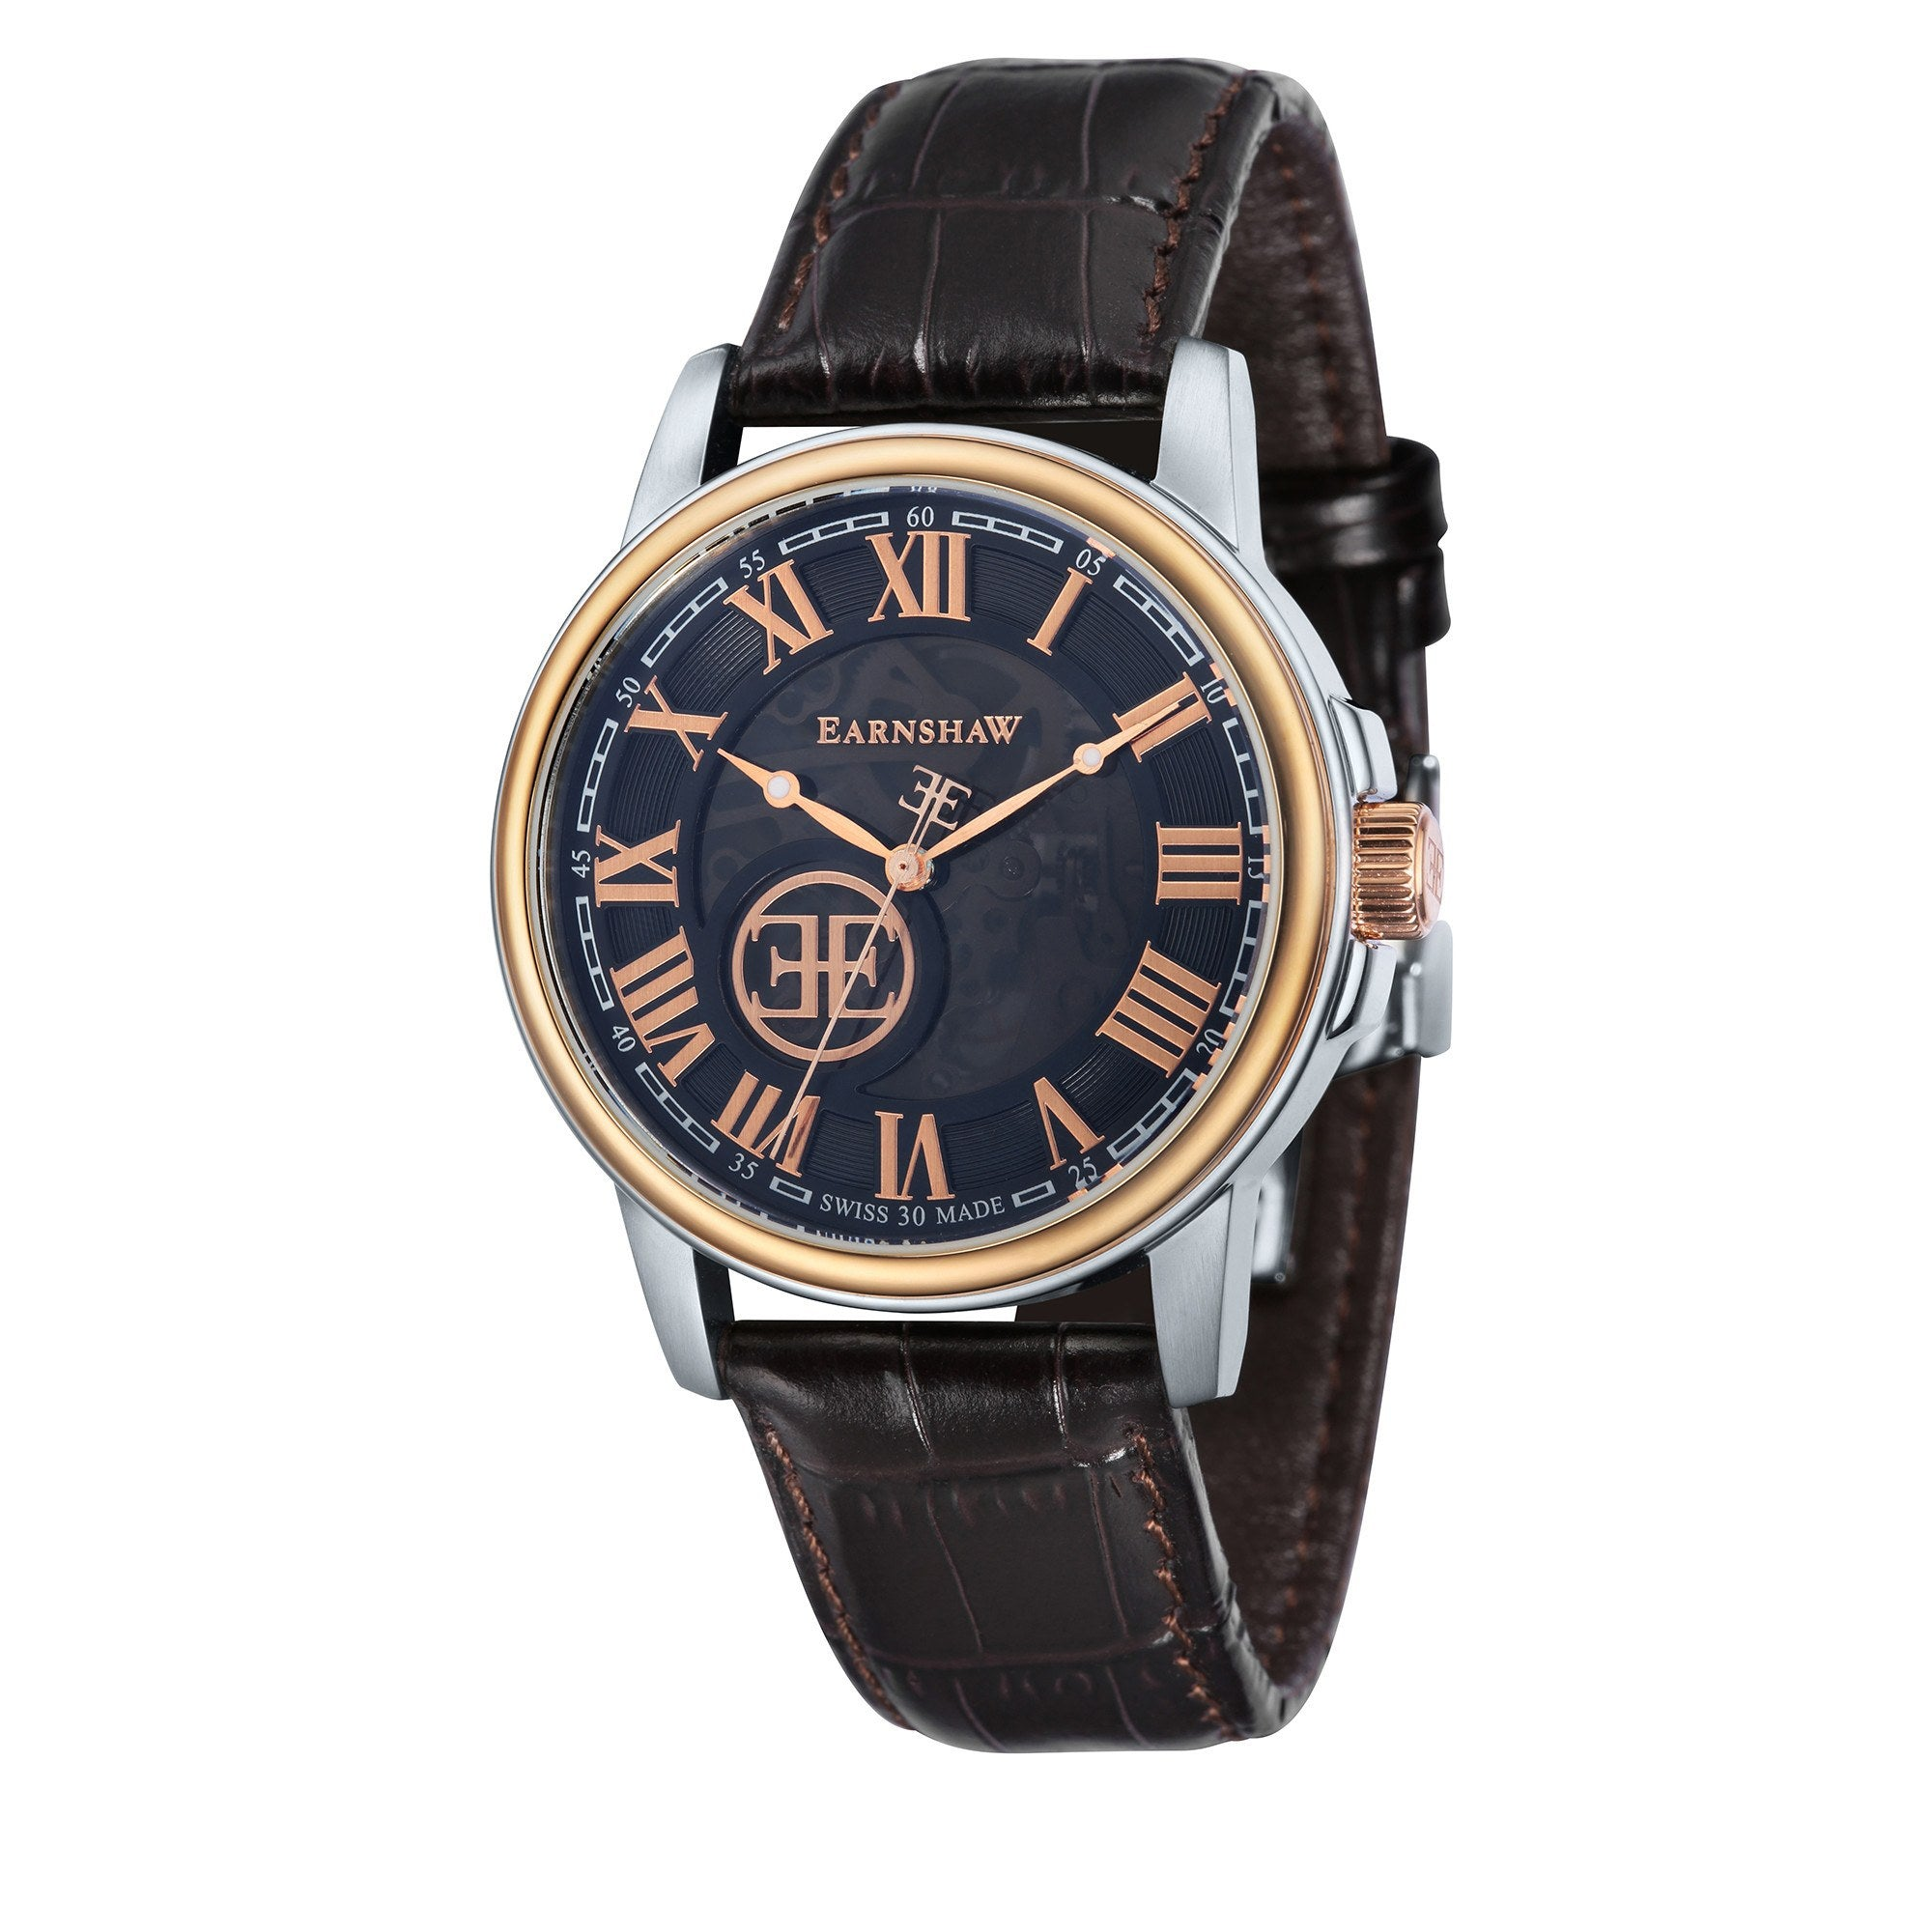 Thomas Earnshaw THOMAS EARNSHAW SWISS MADE Beagle Automatic Skeleton Watch With Dark Brown Genuine Leather Strap ES-0028-08